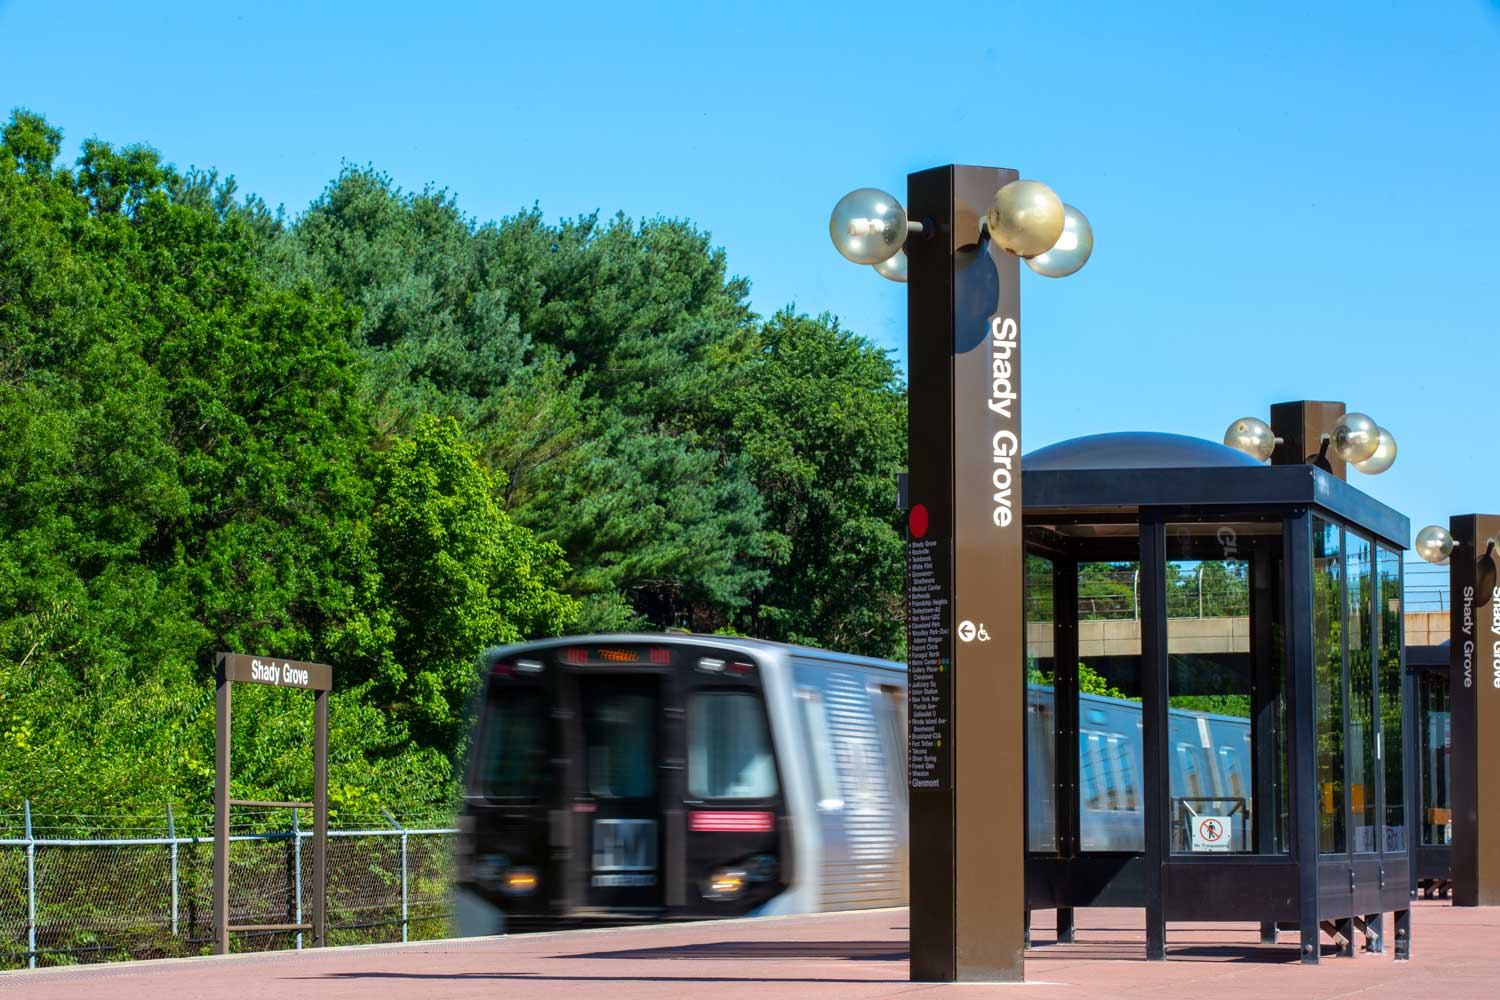 Shady Grove Metro station is 10 minutes from Governor Square Apartments